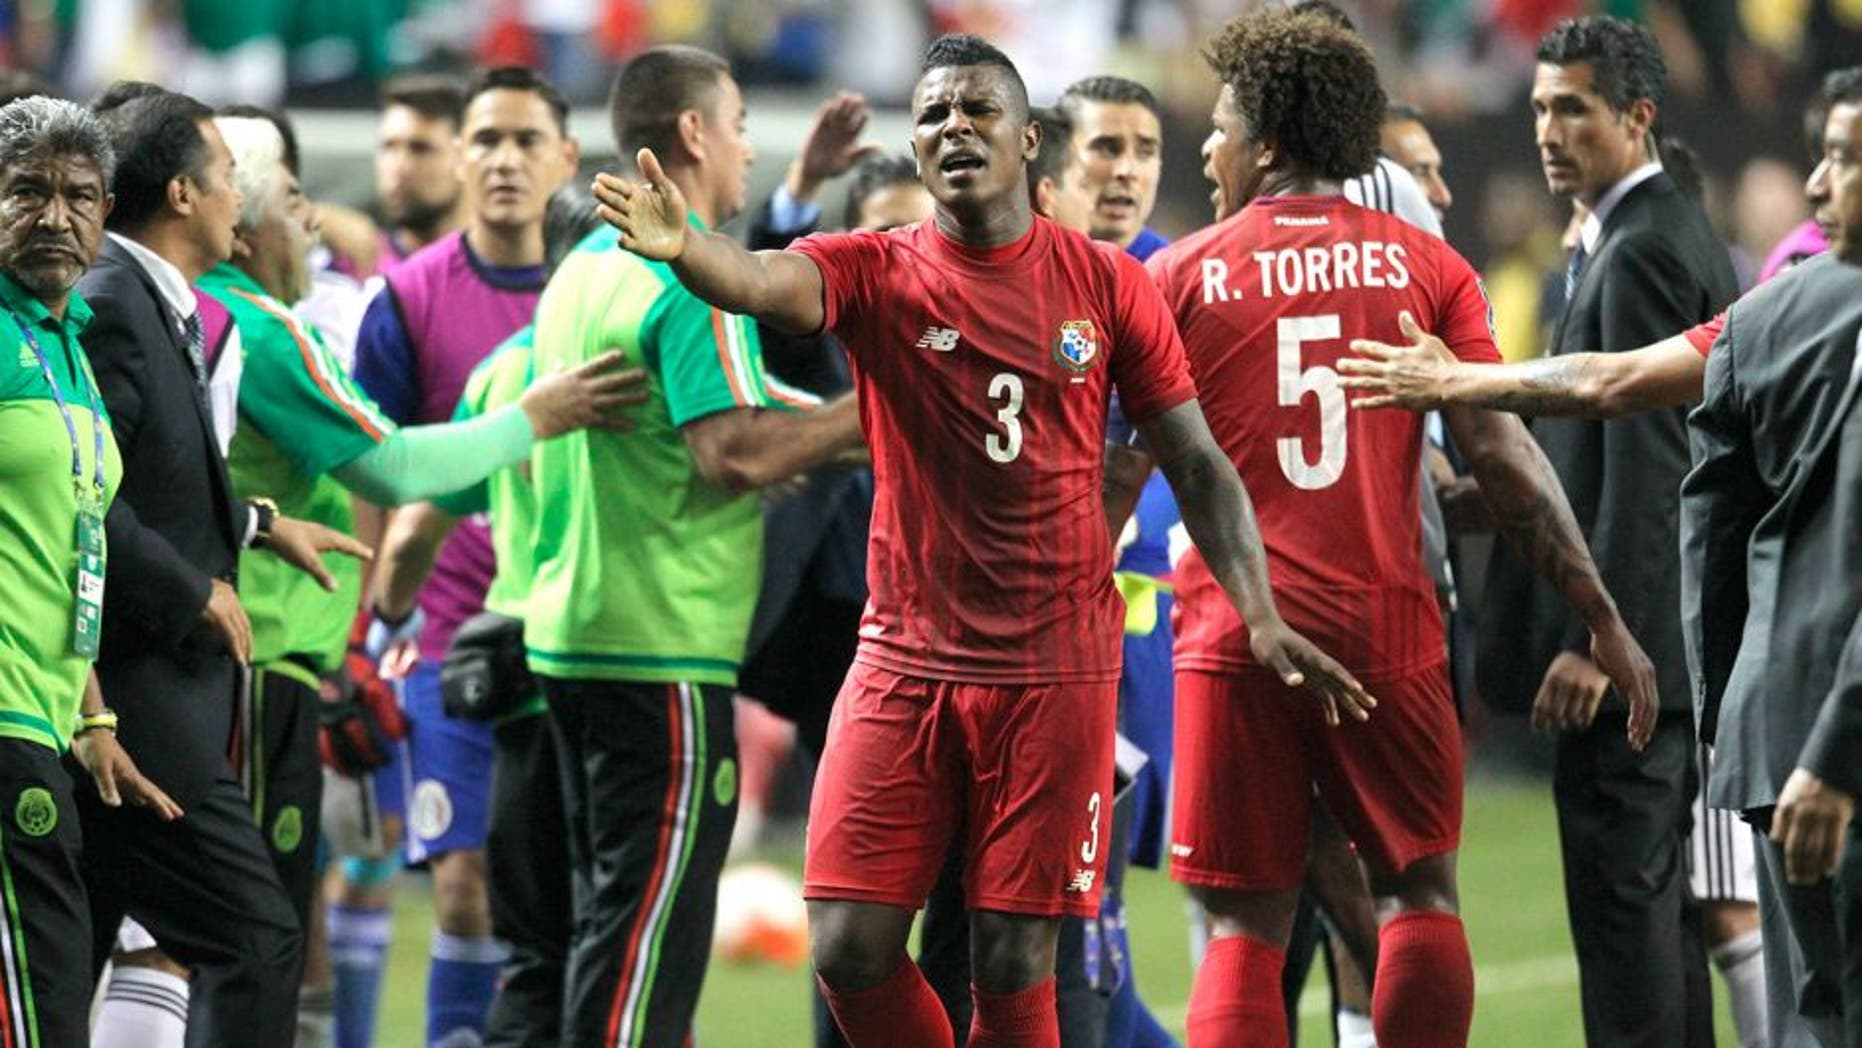 ATLANTA, UNITED STATES - July 22: Players of Panama argue after a defeat in a semi final match between Mexico and Panama as part of Gold Cup 2015 at Georgia Dome on July 22, 2015 in Atlanta, United States. (Photo by Omar Vega/LatinContent/Getty Images)